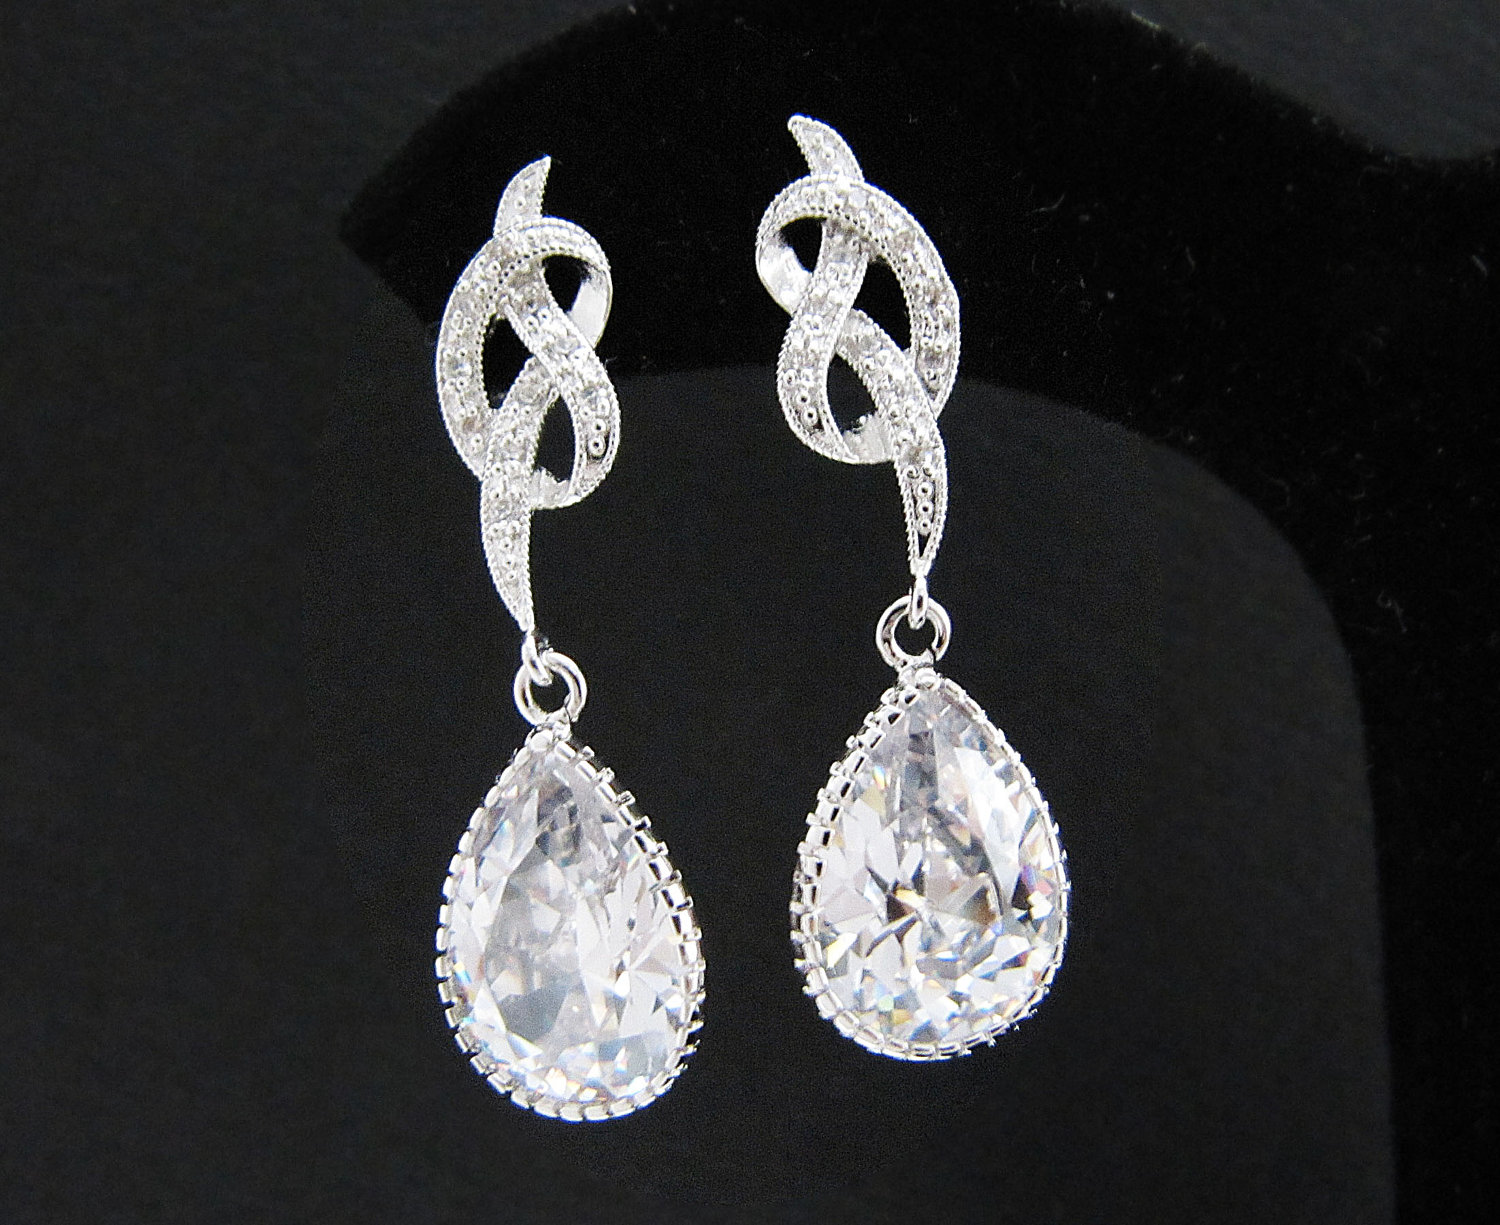 b501035e0 Bridal Earrings Matte Rodium Plated Jewel Knot Cubic Zirconia Ear Posts  With Clear White Large Cubic on Luulla